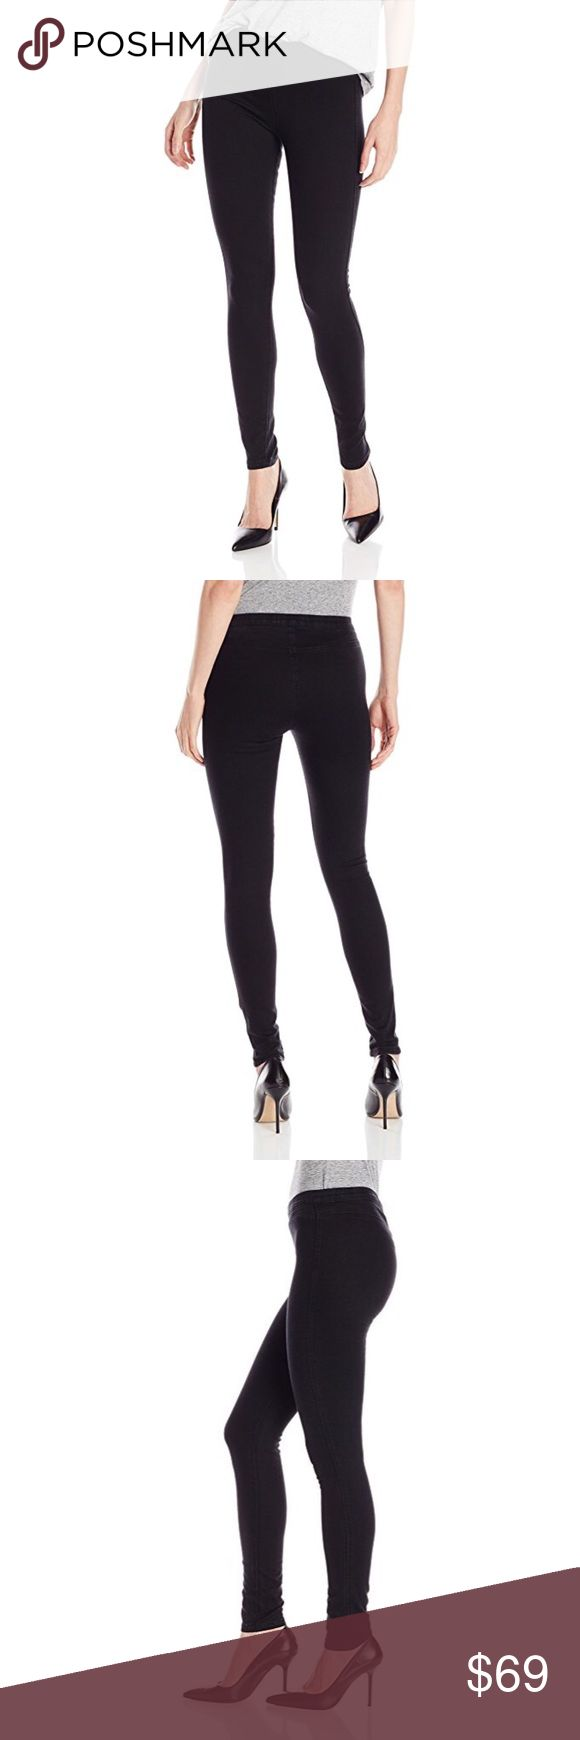 NWT American Apparel Pull-On Legging Jeans Black NWT American Apparel pull-on legging denim in black - same material/fit as American Apparel's easy jeans. Form-fitting, a forgiving elastic waistband with a mid-high-rise - this is the ultimate in comfy denim that looks AMAZING on. Soft but still denim feels and look in a black wash. 77% cotton, 21% polyester, and 2% elastane. No damage, no wear - perfect new condition! Offers welcome/add to a bundle & ill send a private discount! Free gifts…